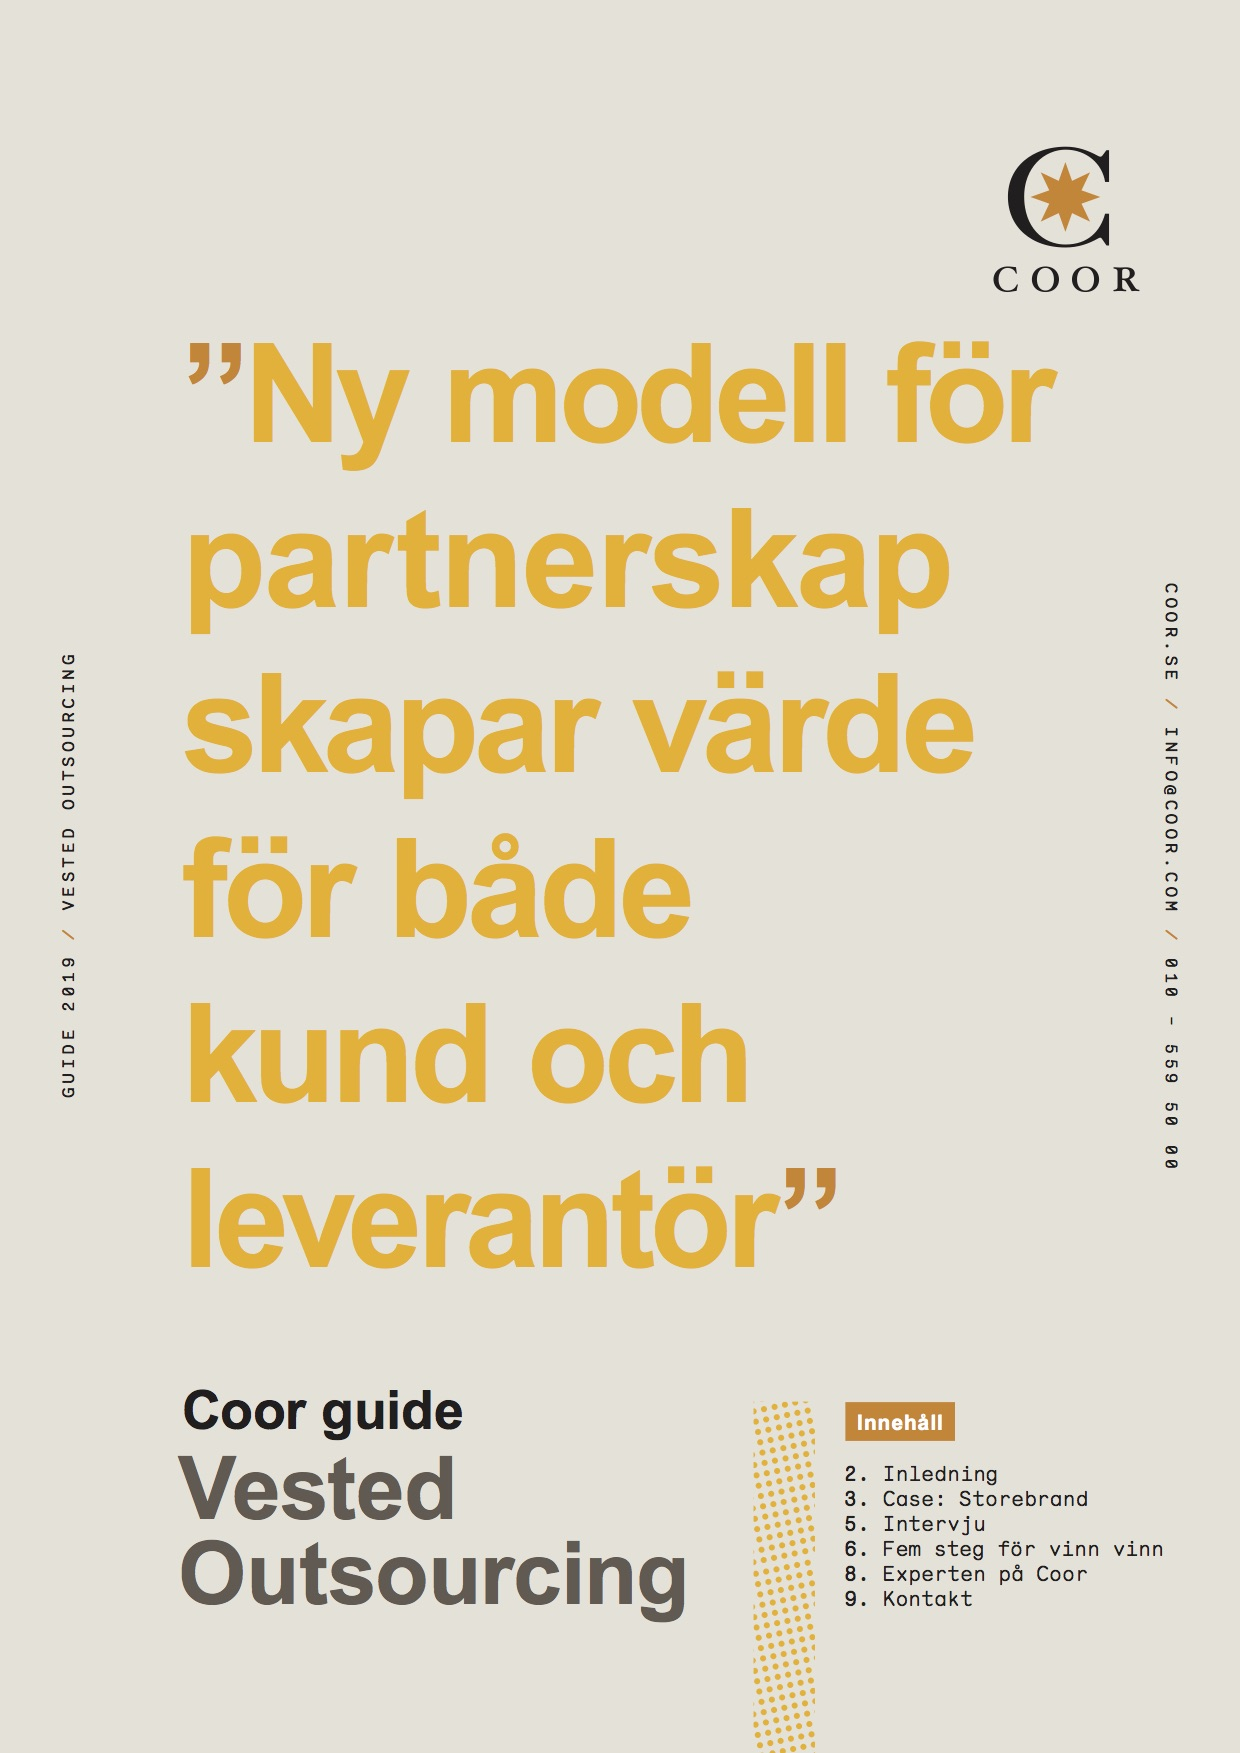 Coors guide för Vested Outsourcing | Partnerskapsmodell | Coor